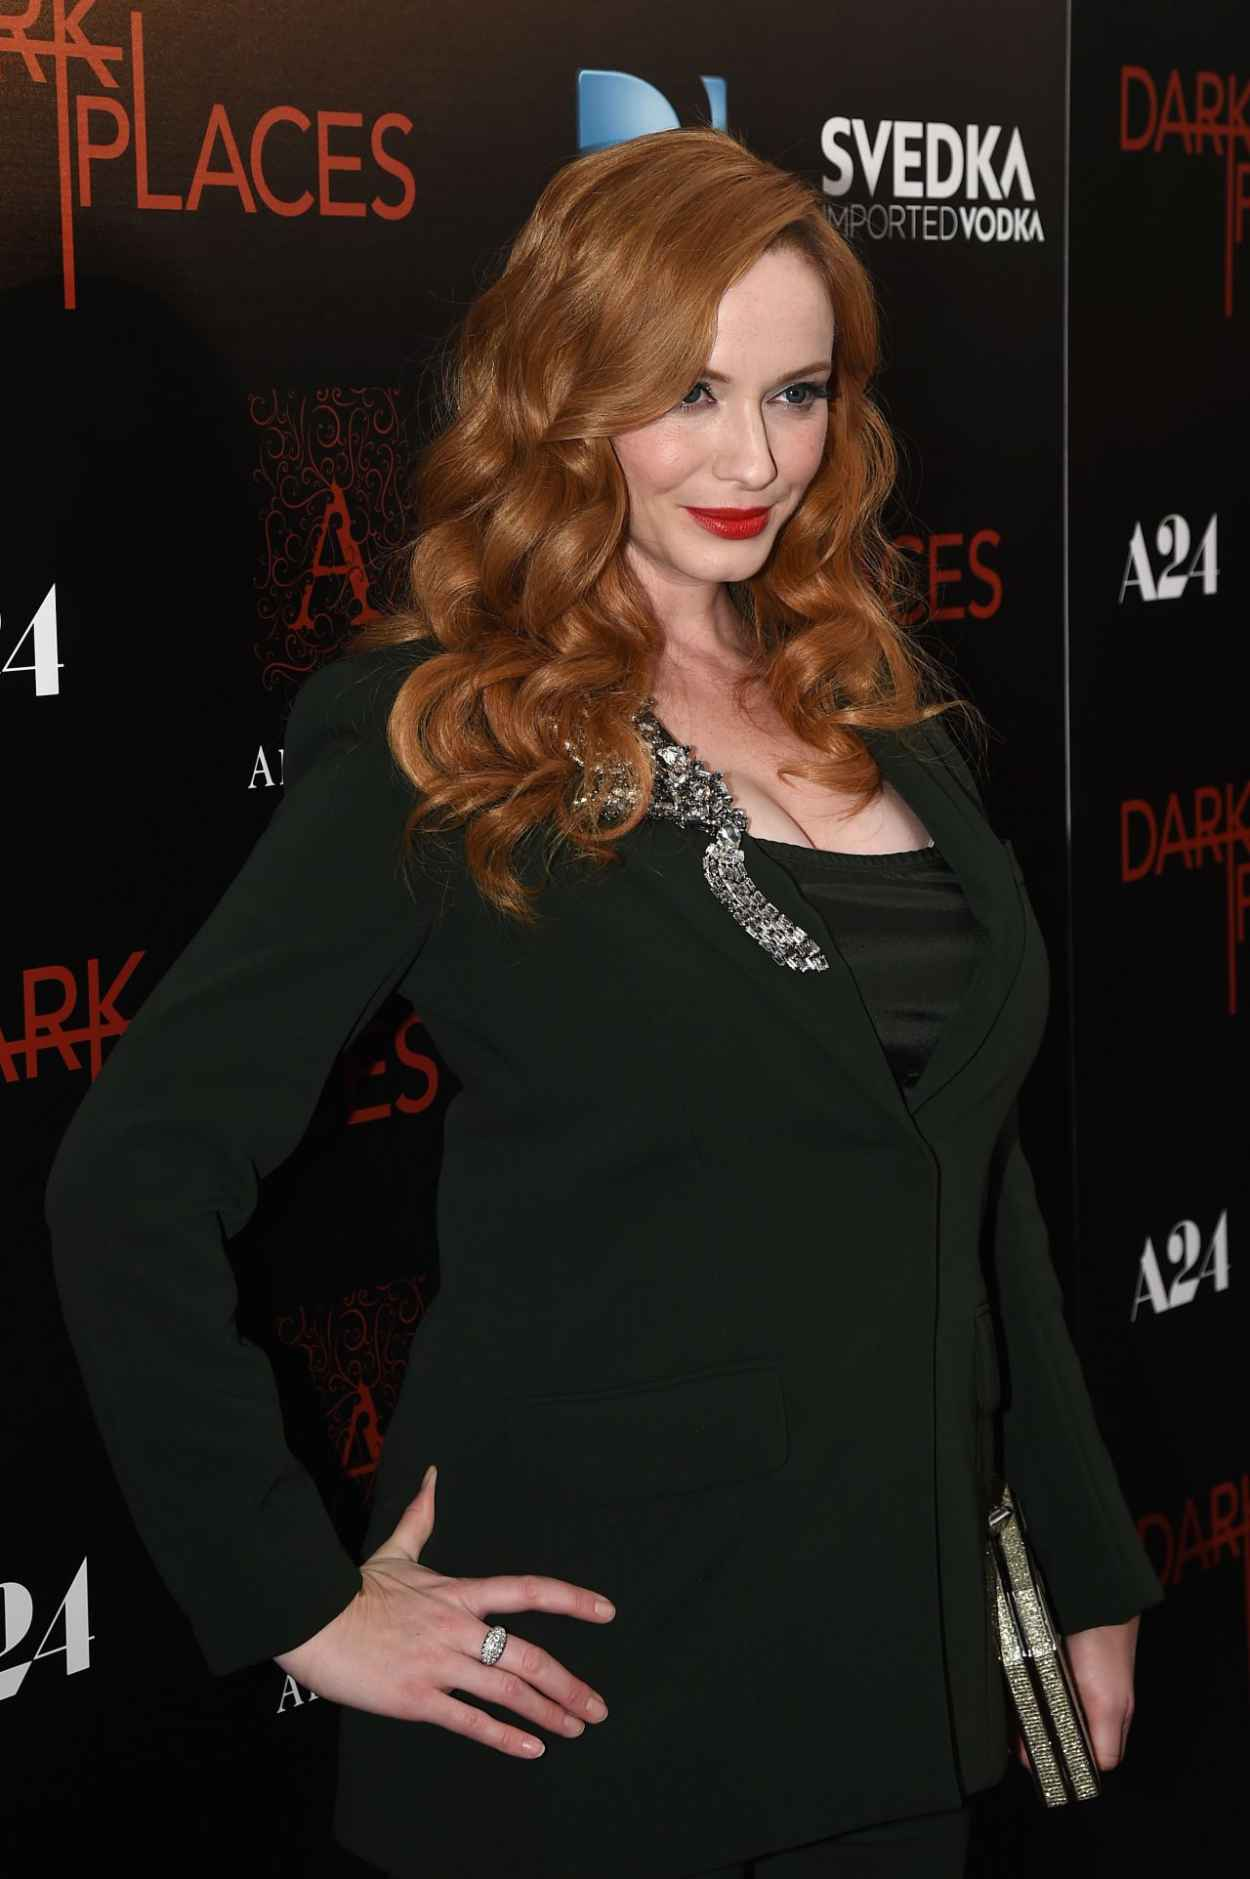 Christina Hendricks - DIRECTV-s Dark Places Premiere in Los Angeles-4